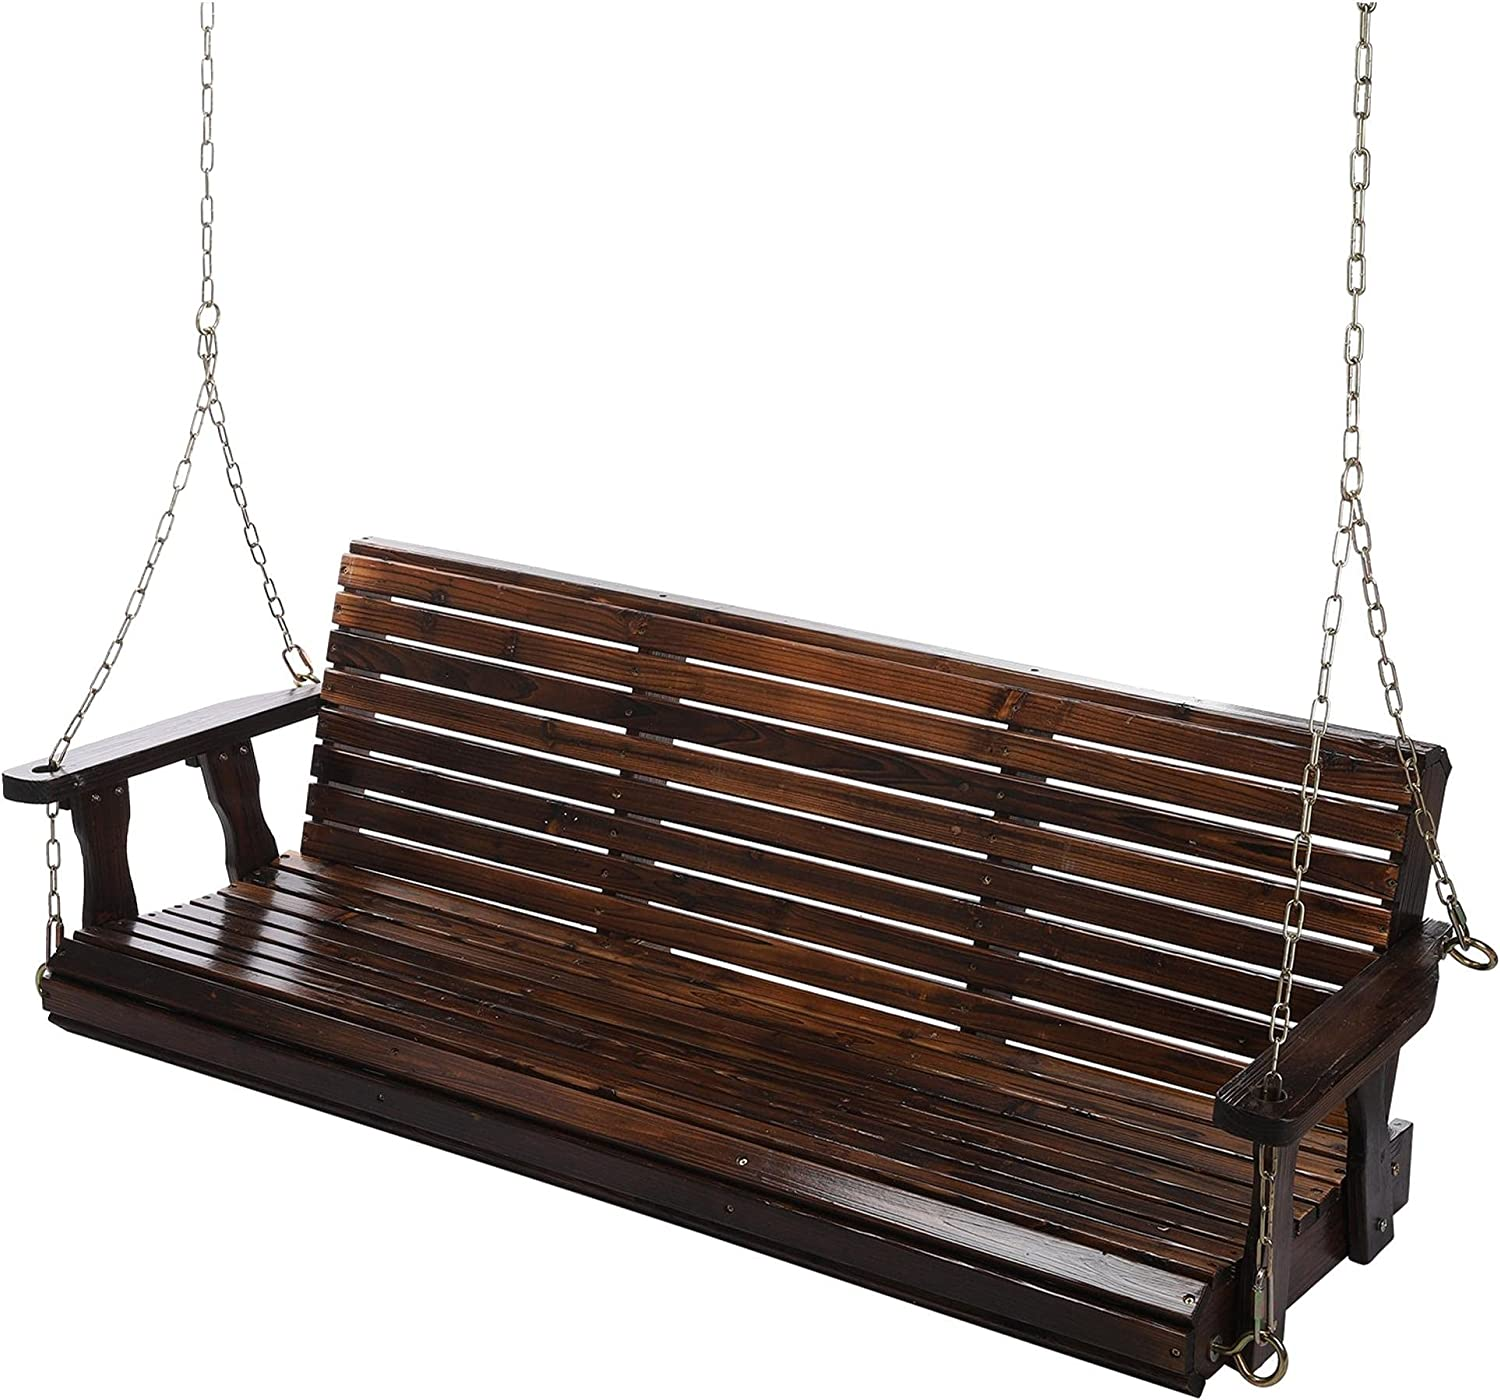 Outdoor Porch Swing Bench Patio, Jolincc 5 Ft Wooden 3 Person Swing, Fed-Resistant Patio Swing with 800lbs Duty Rating, Steel Chains, All-Weather Garden Swing for Enjoying and Relaxing